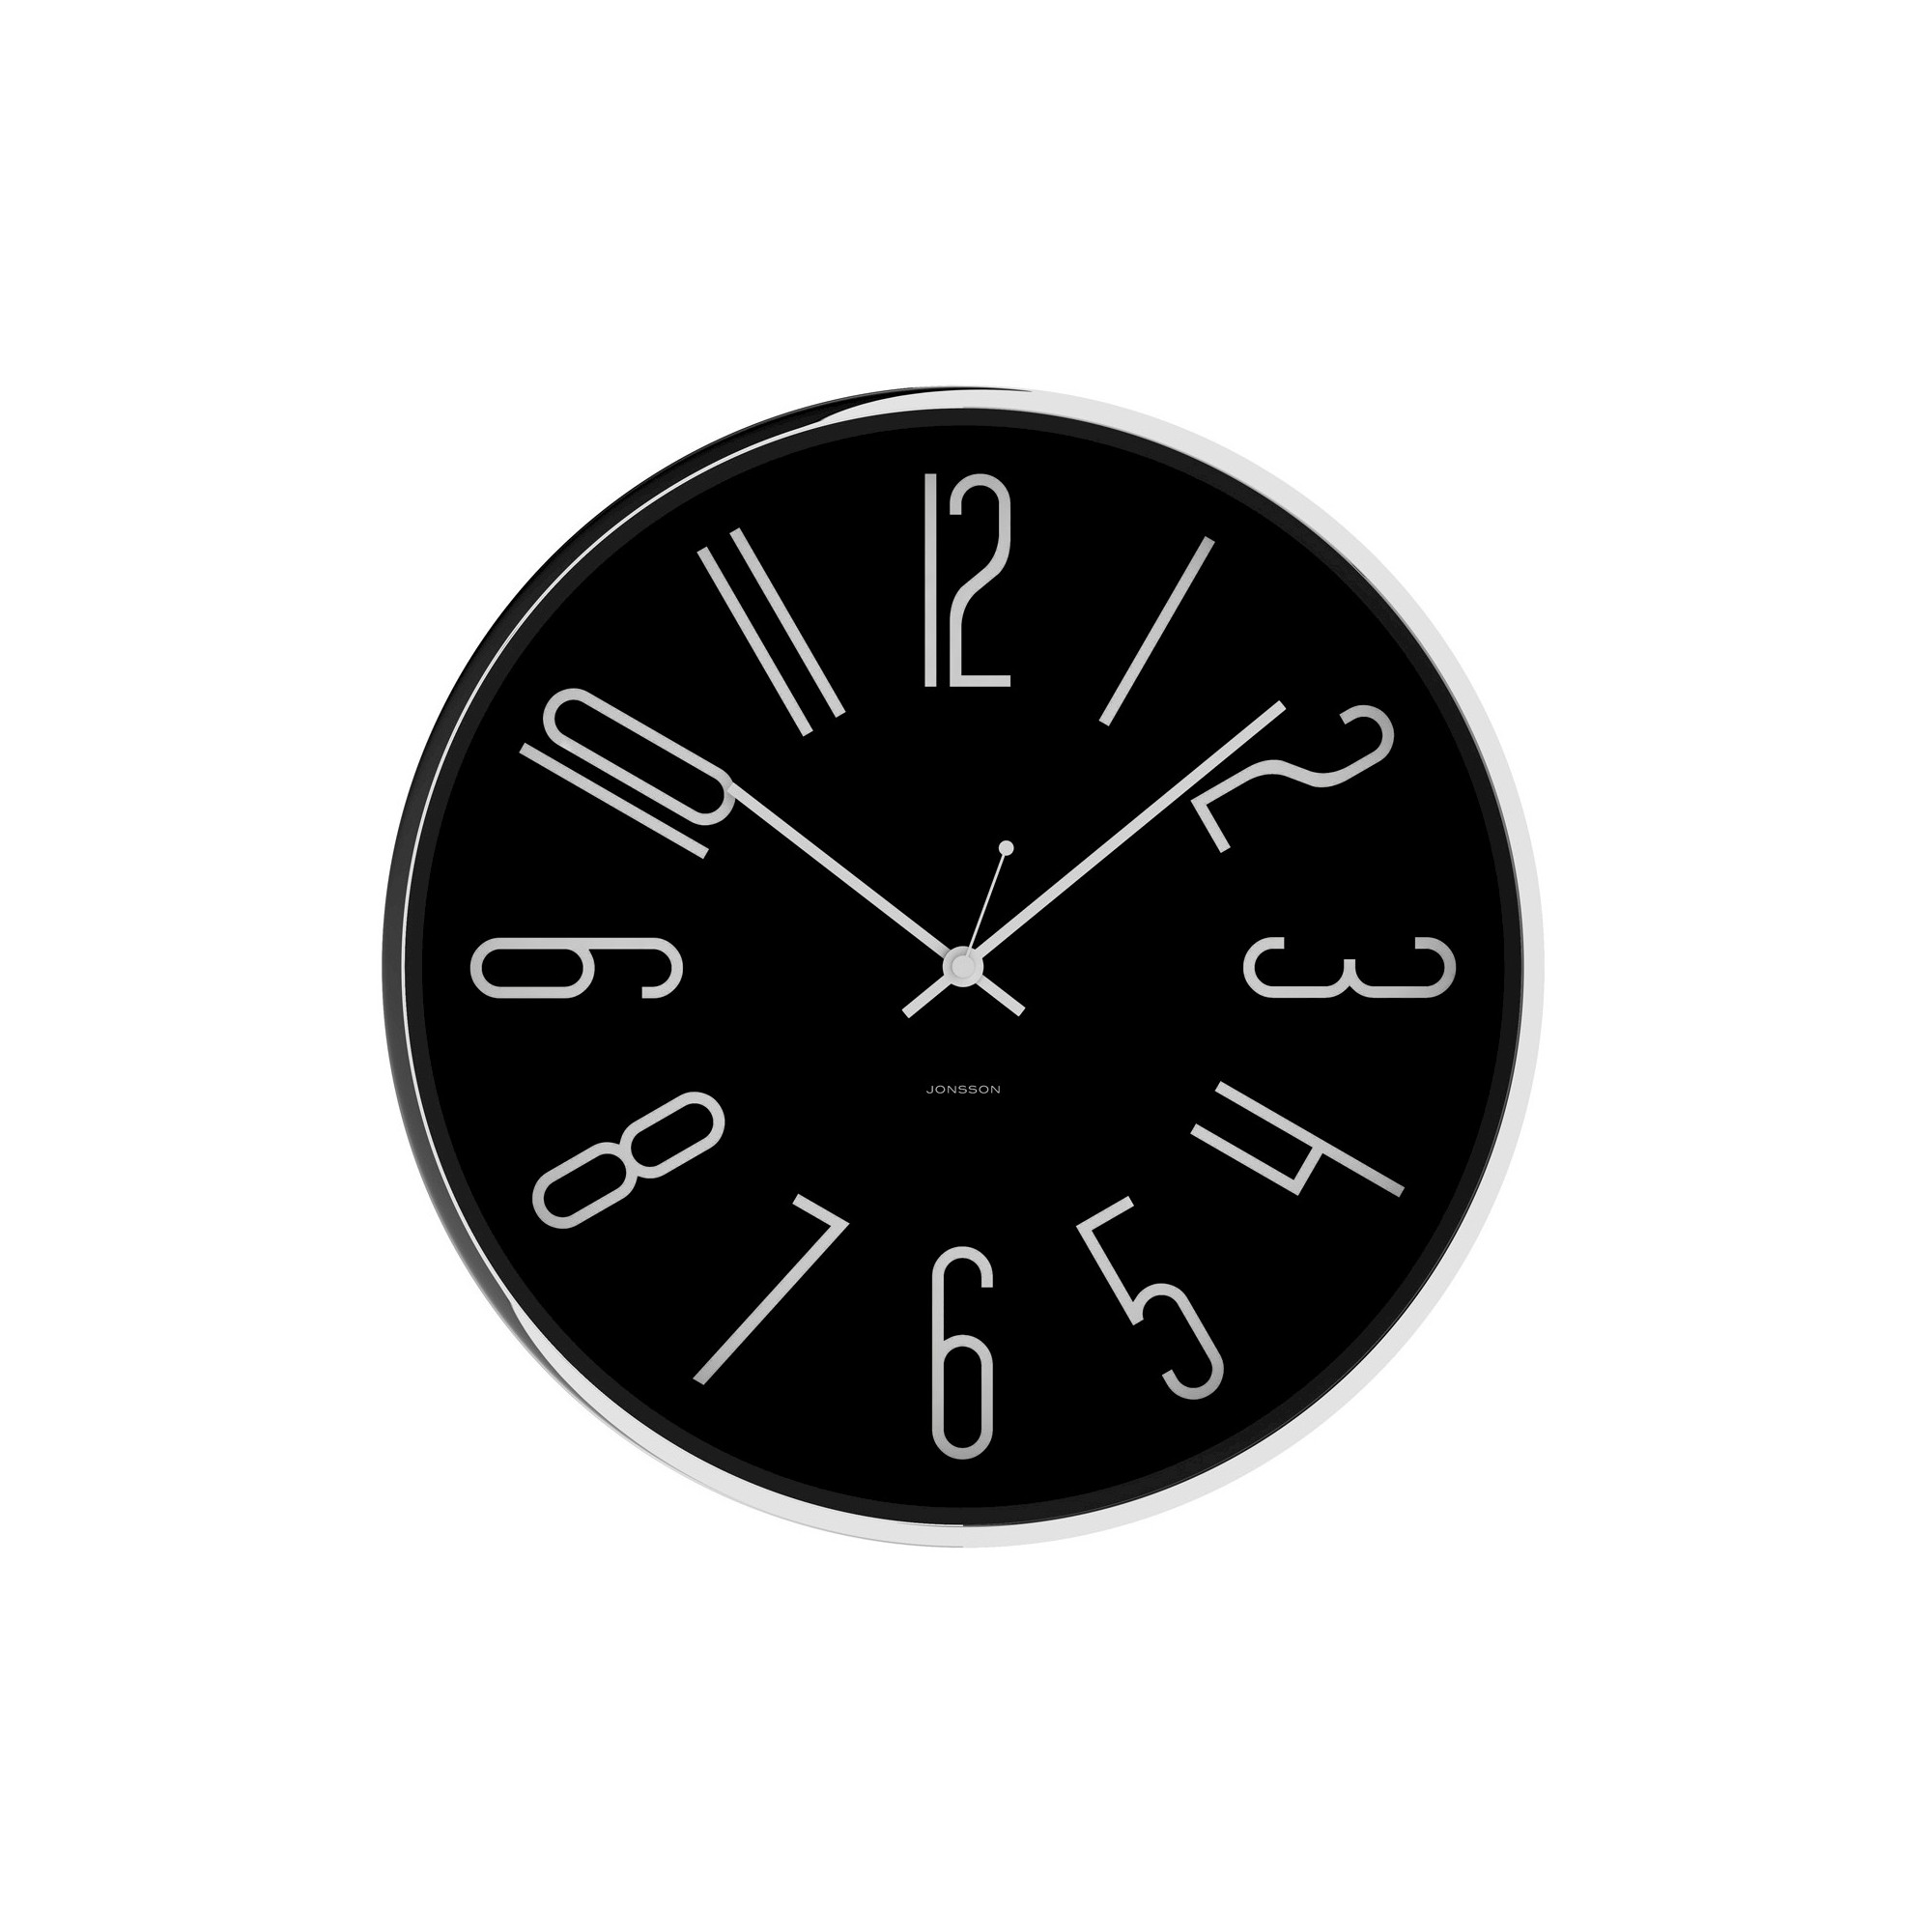 Chrome 12 Round Wall Clock Black Jonsson Timeware Wall Clock Clock Round Wall Clocks